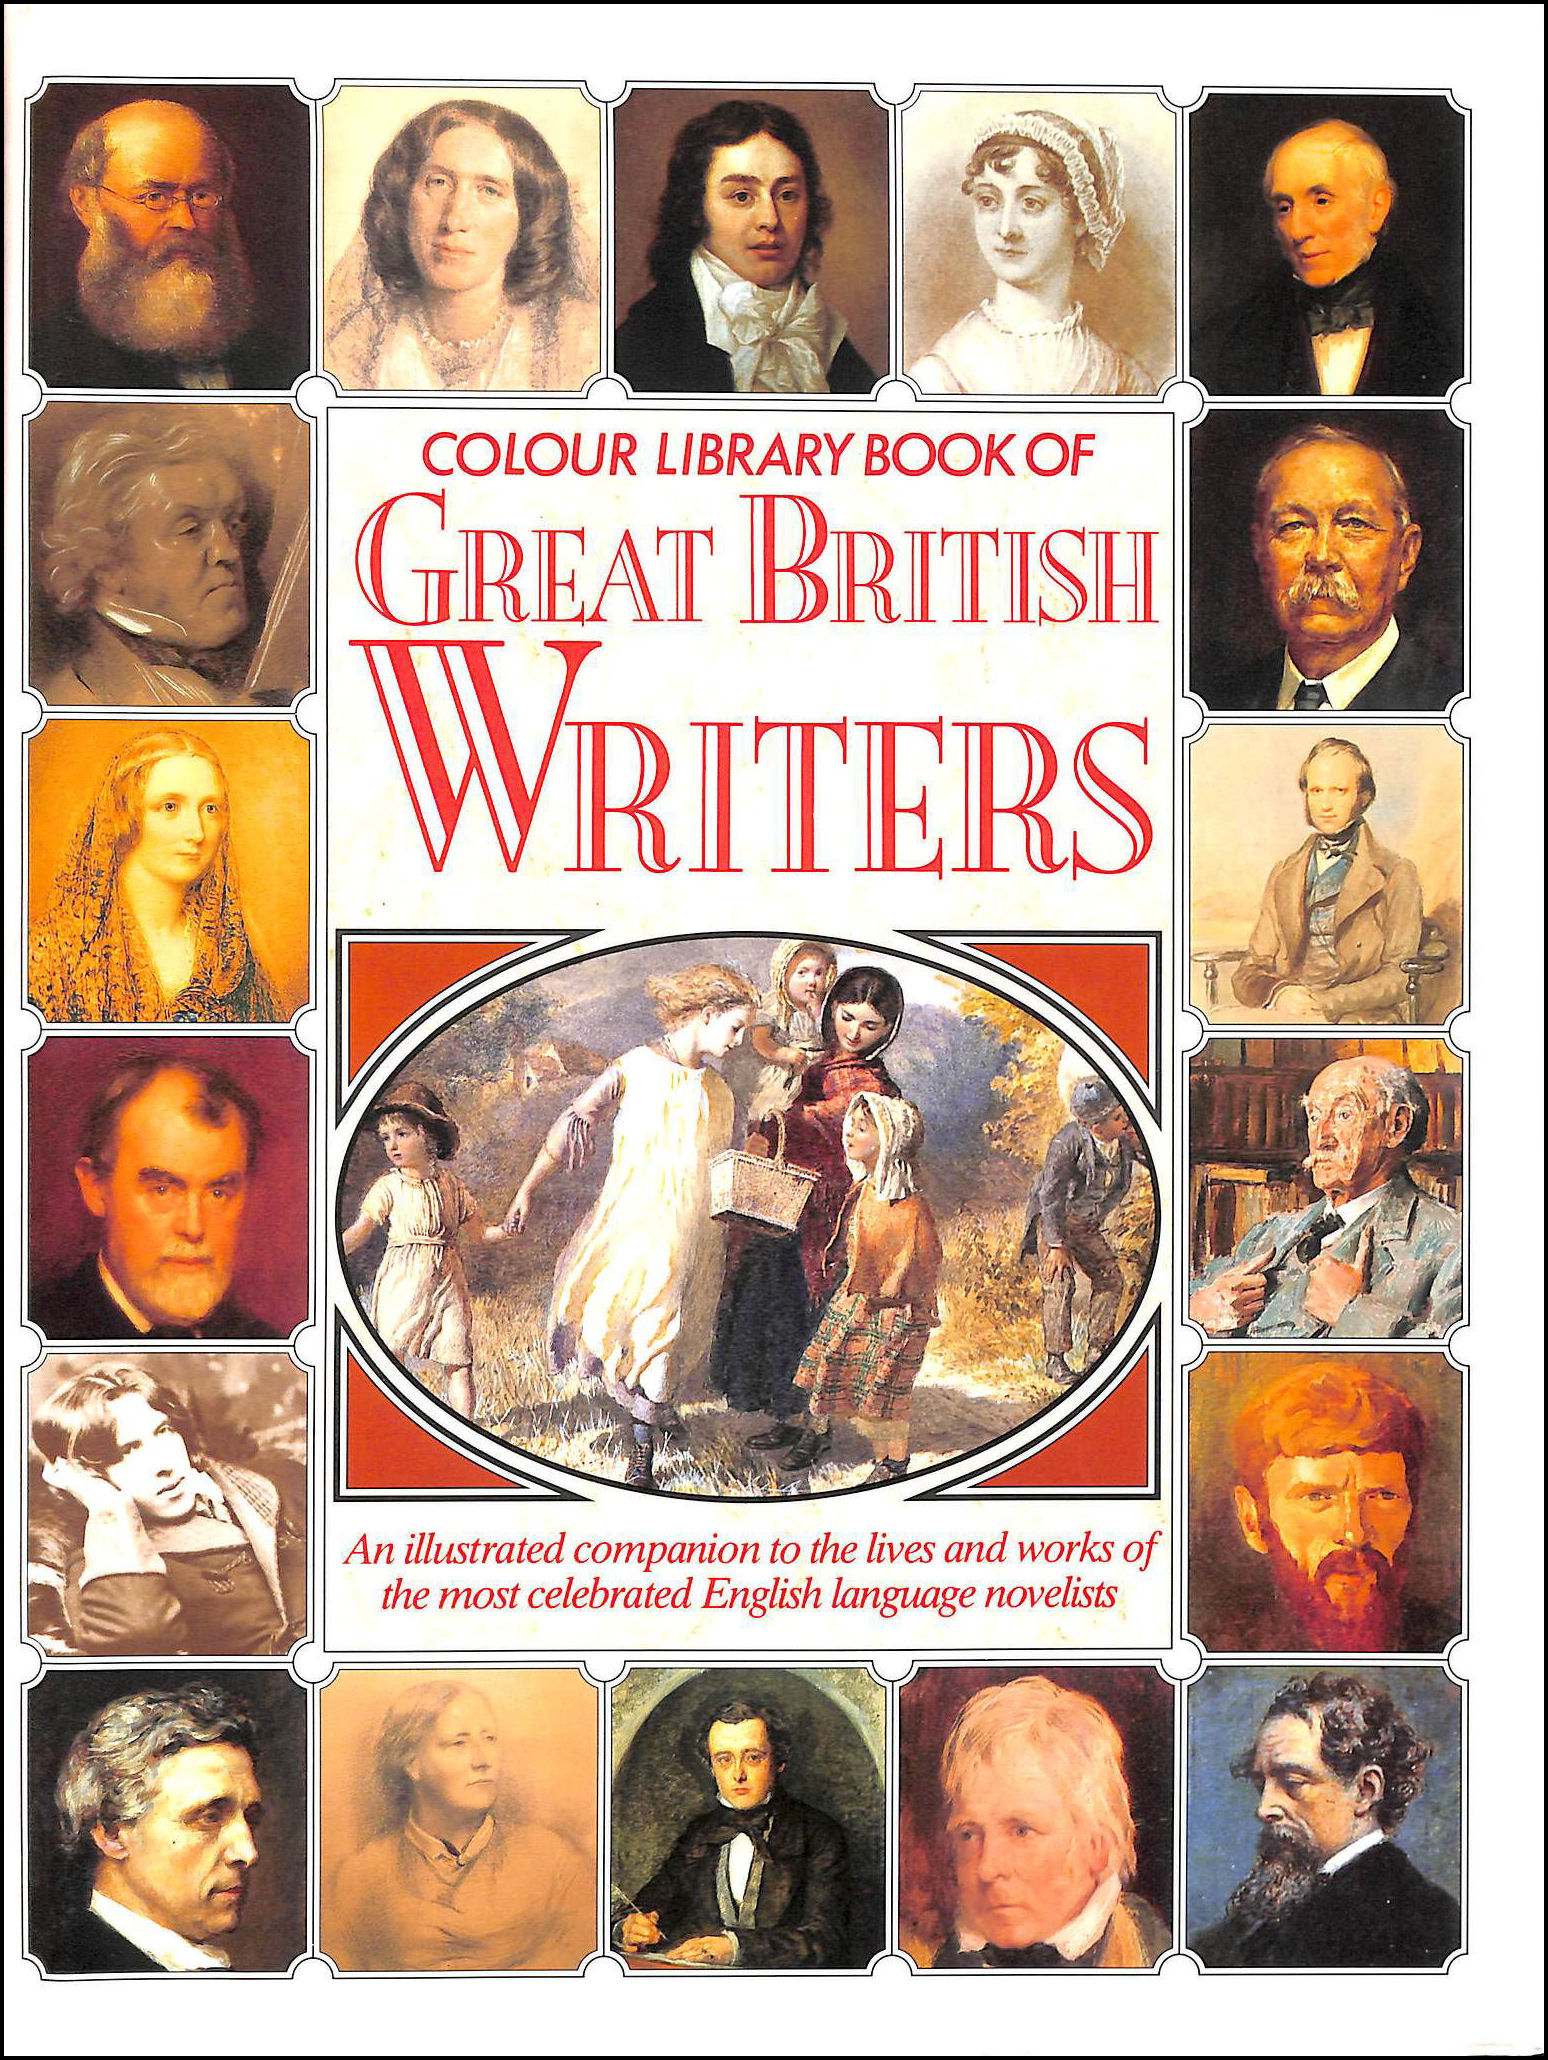 Colour Library Book Of Great British Writers., No Author.